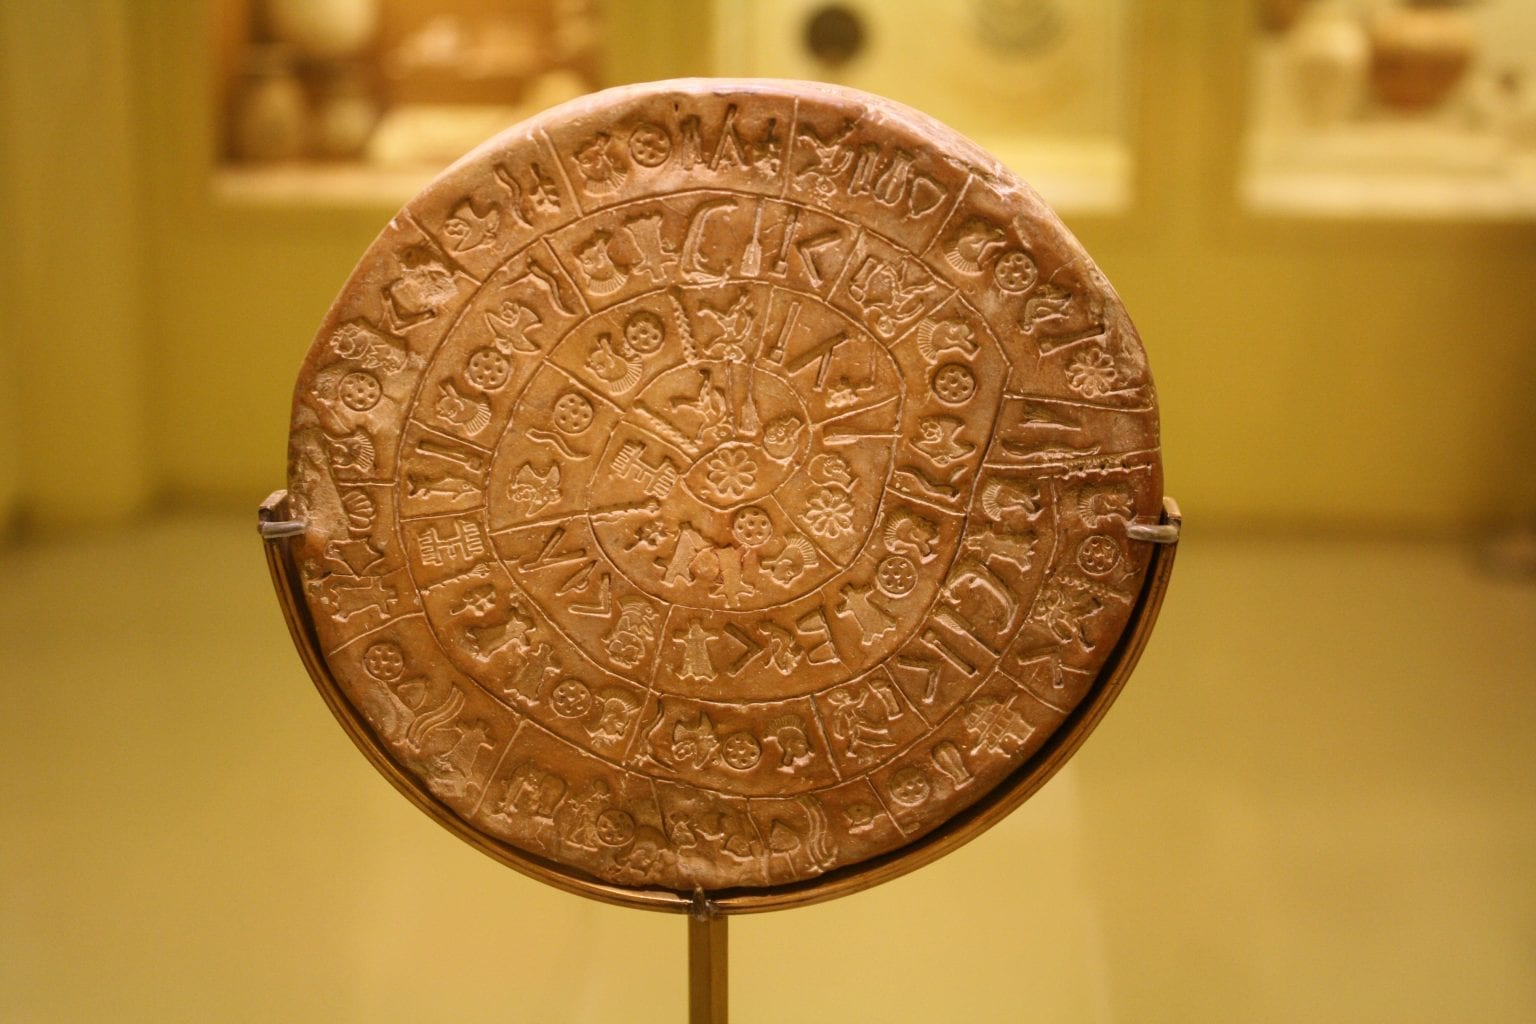 Side A of the famous Phaistos Disc. Credit: Ancient.eu